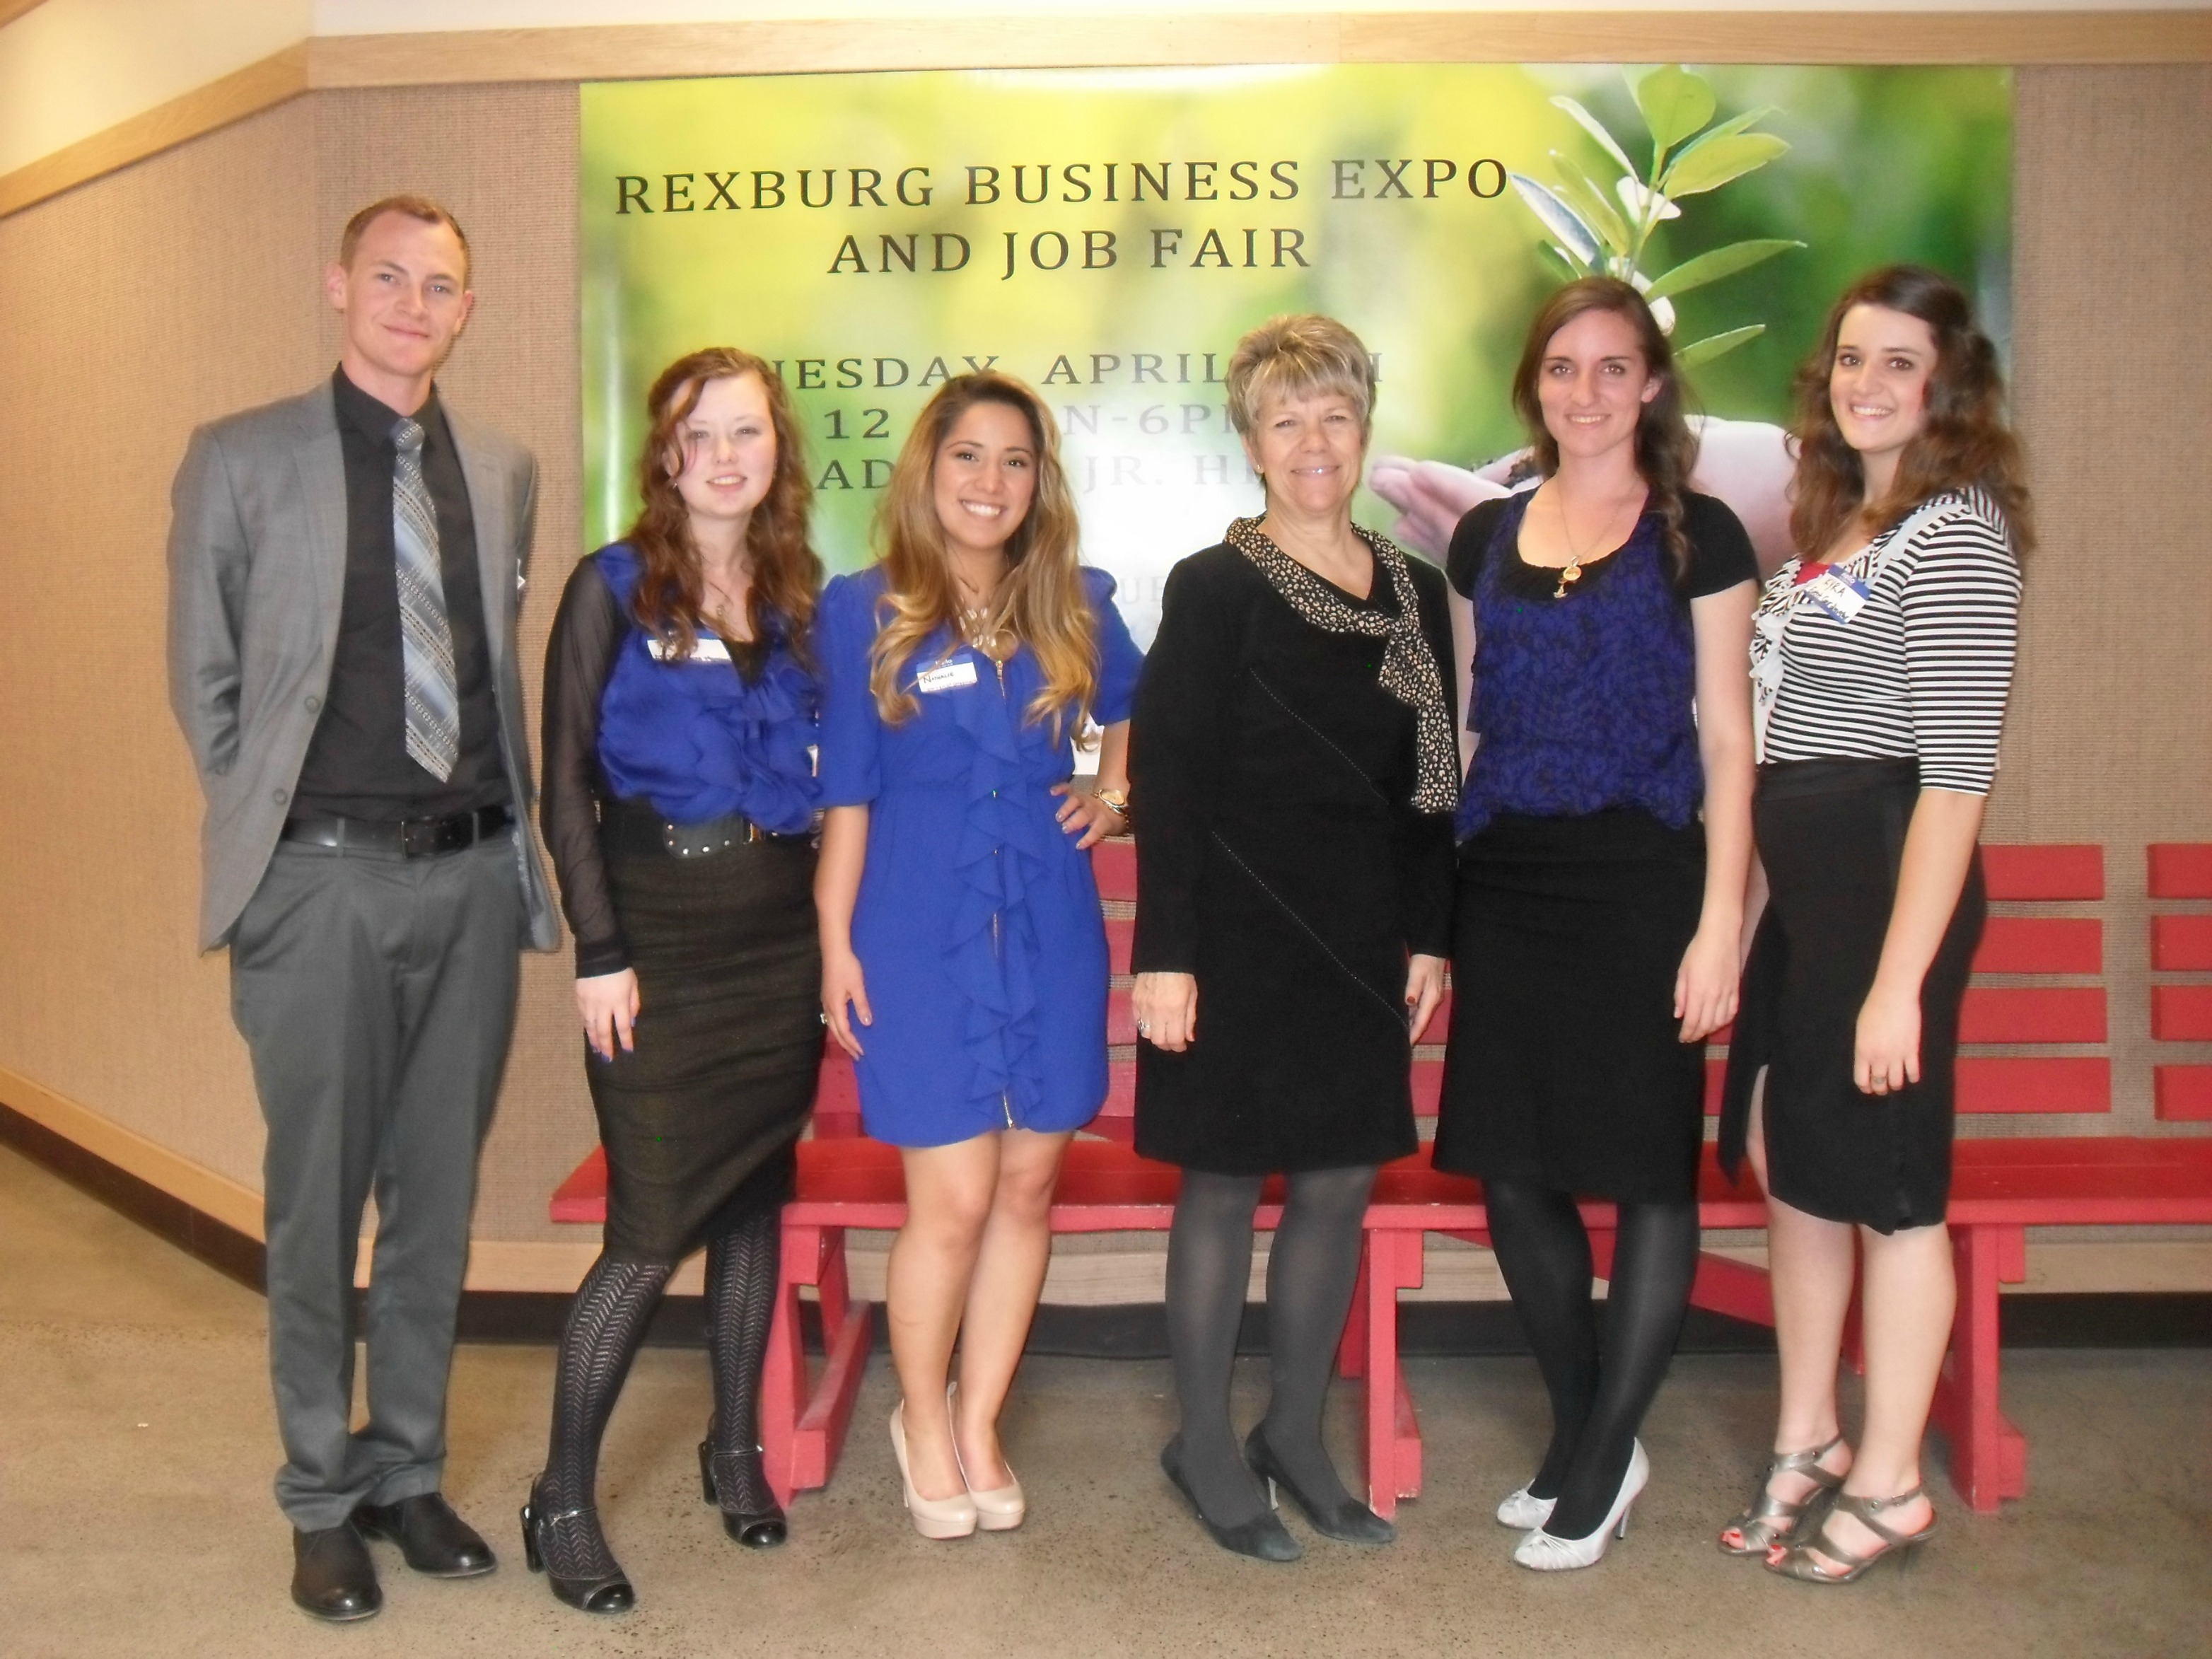 Rexburg Business Expo Student Event Management Group with our supervisor Donna Benfield of the Chamber of Commerce (black dress)